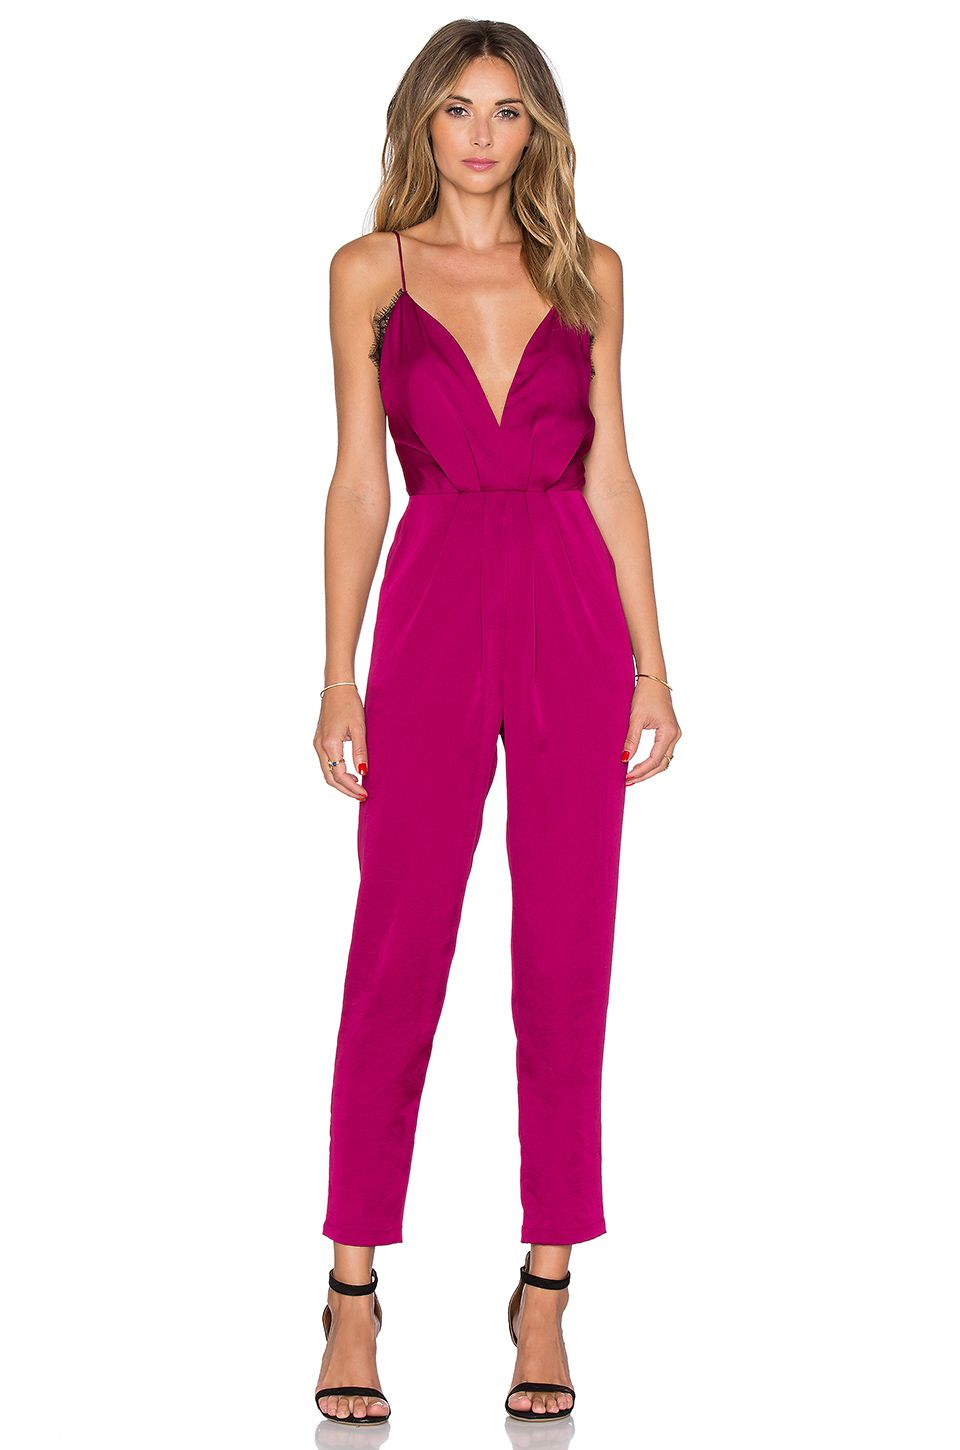 Lovers + Friends My Way Jumpsuit in Berry | buy next | Pinterest ...